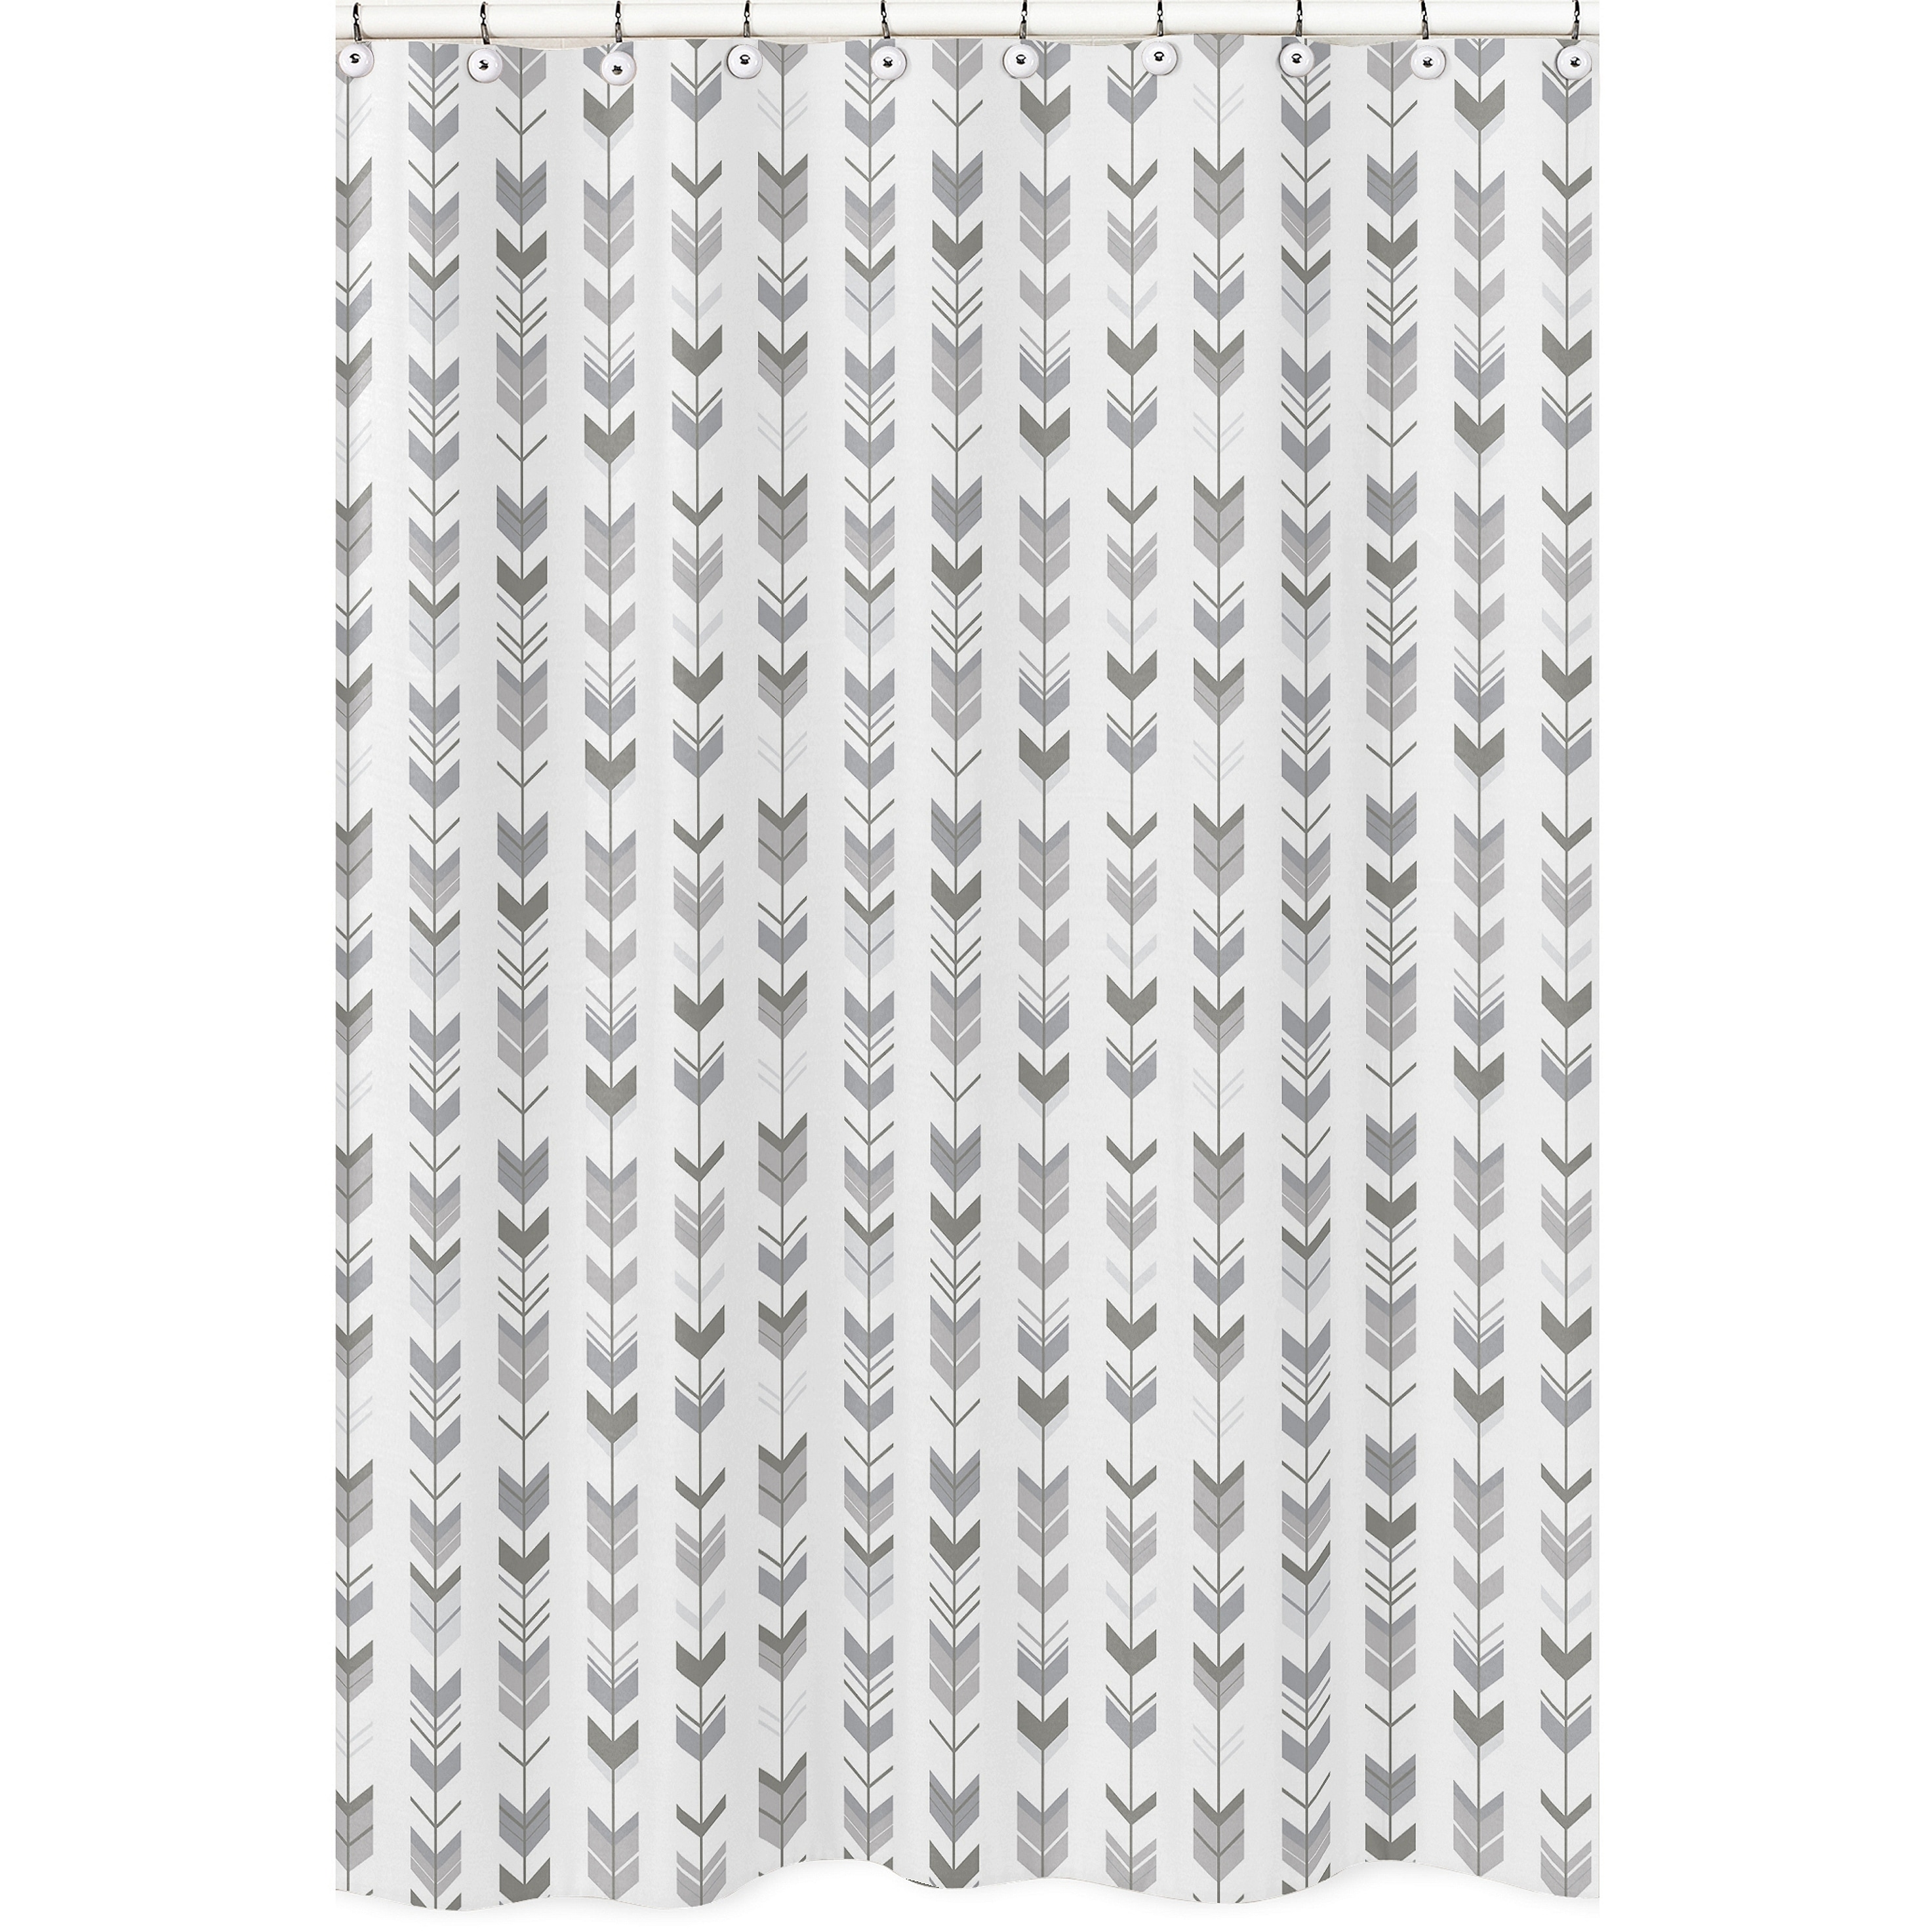 Shop Sweet Jojo Designs Shower Curtain For The Grey And White Mod Arrow Collection